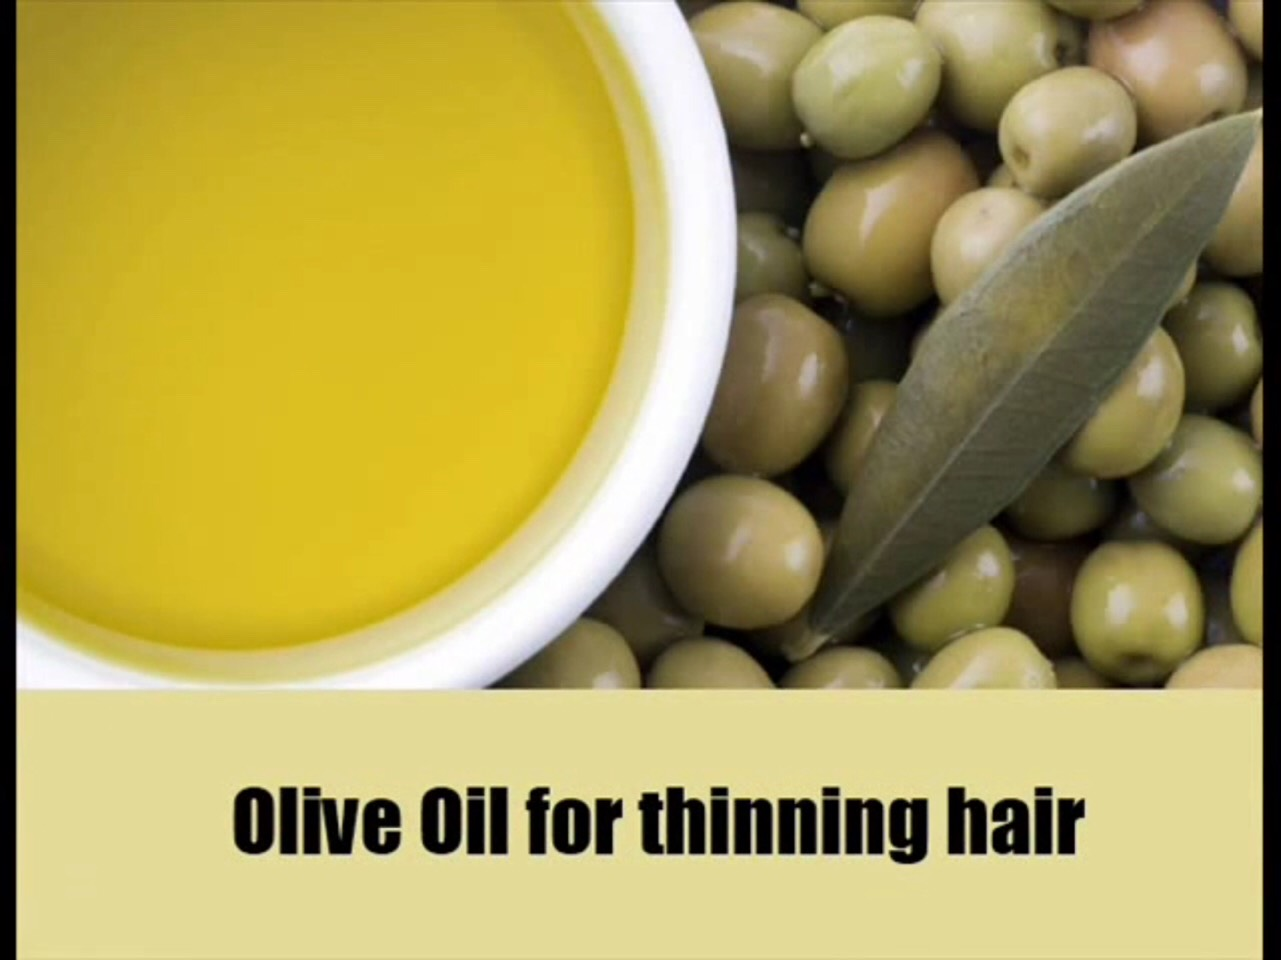 Massaging scalp with olive oil can treat the problem of thinning hair. It is recommended to remove the oil after 6 to 8 hours for obtaining better results. Applying olive oil can also help in removing dirt from the hair. It can further help in improving hair texture.